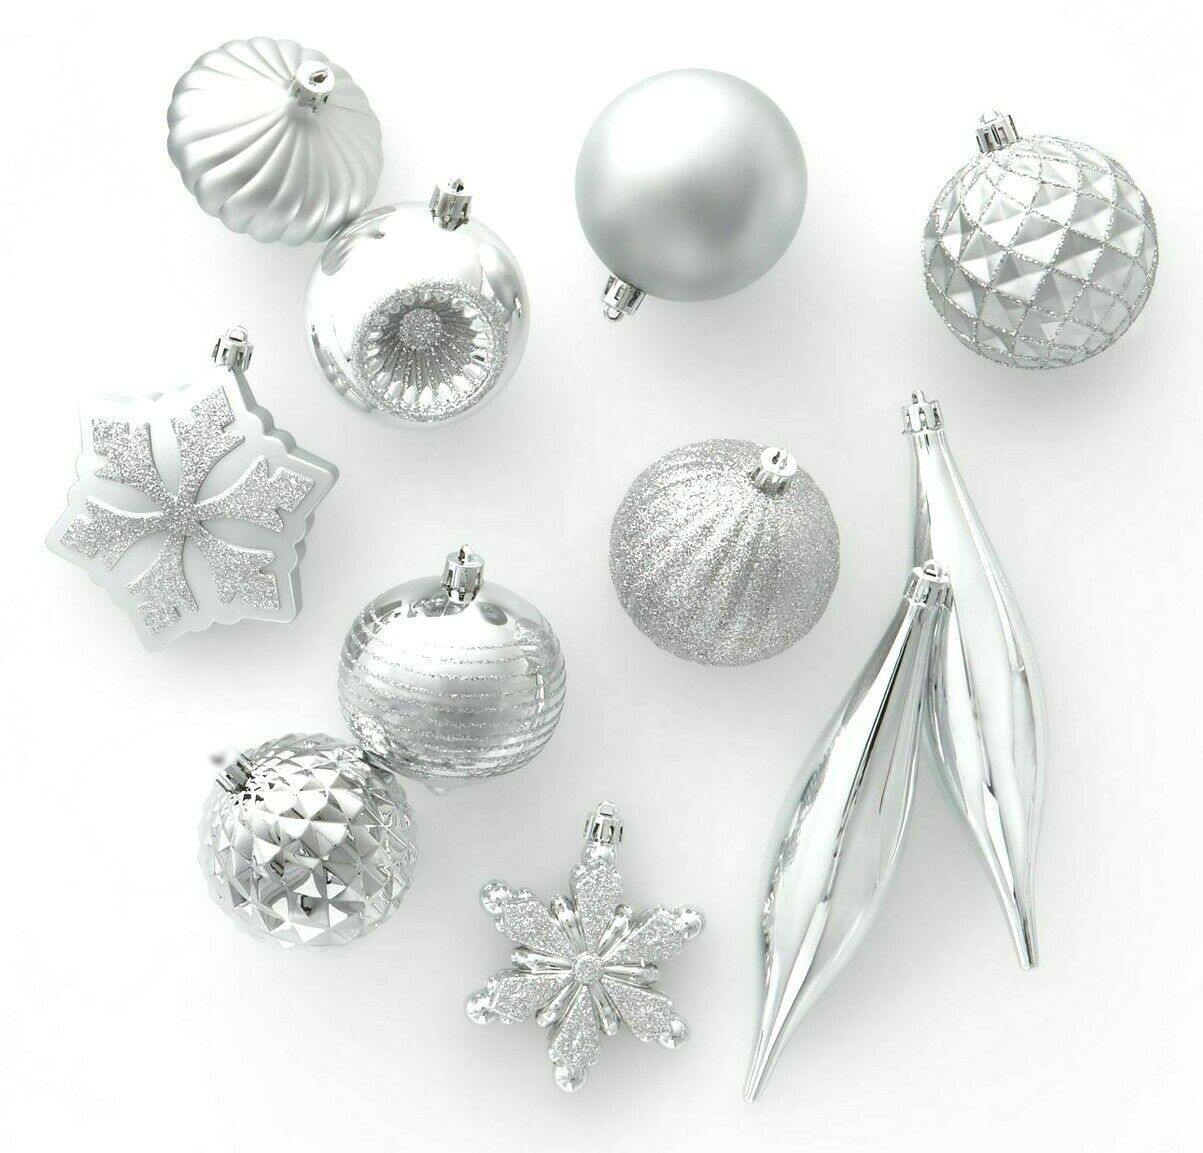 40ct Silver Shatter Proof Resistant Christmas Tree Ornament Set Wondershop NEW